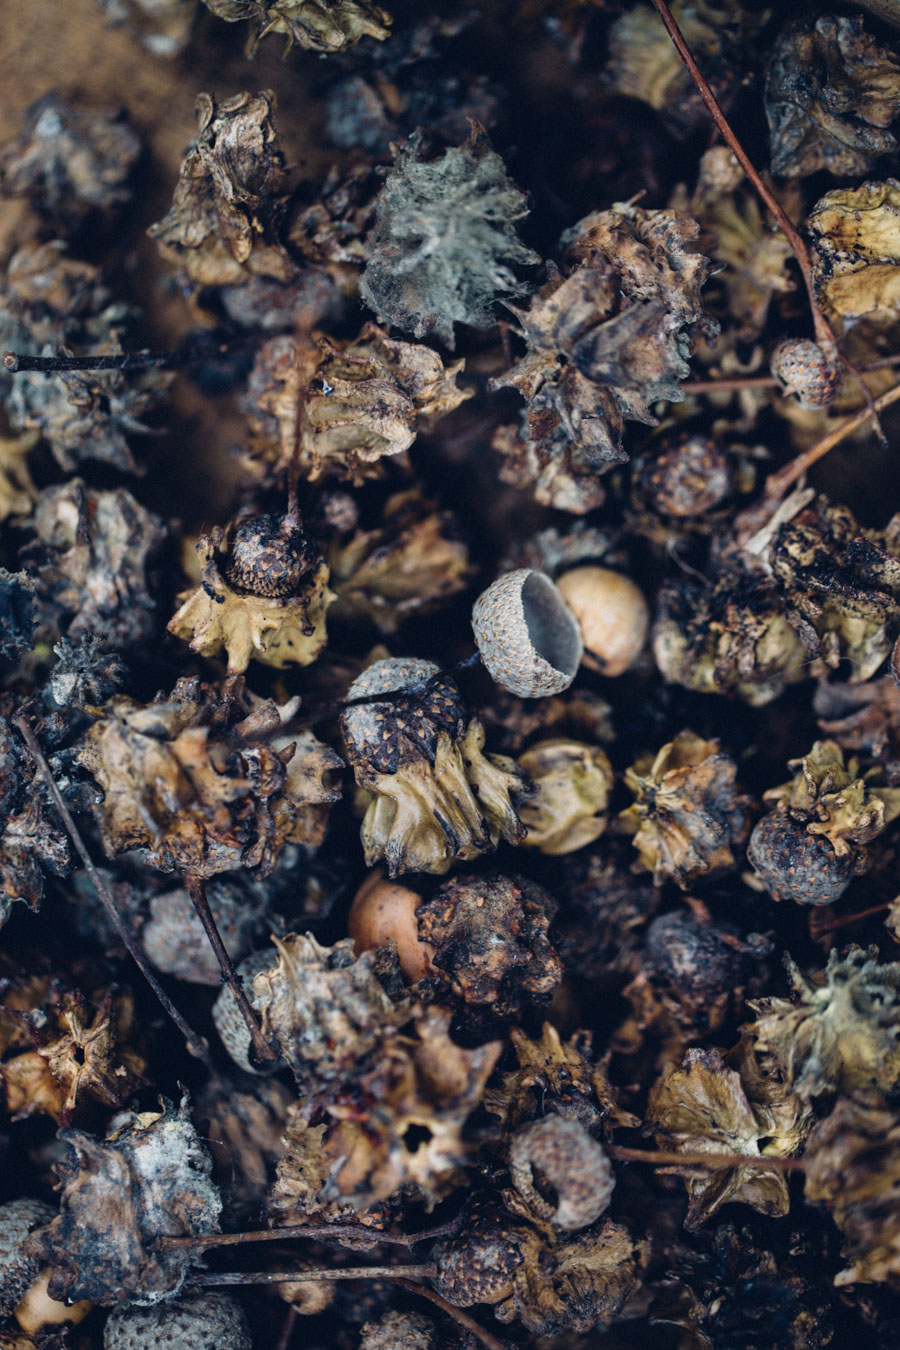 Foraging for Natural Dye Plants